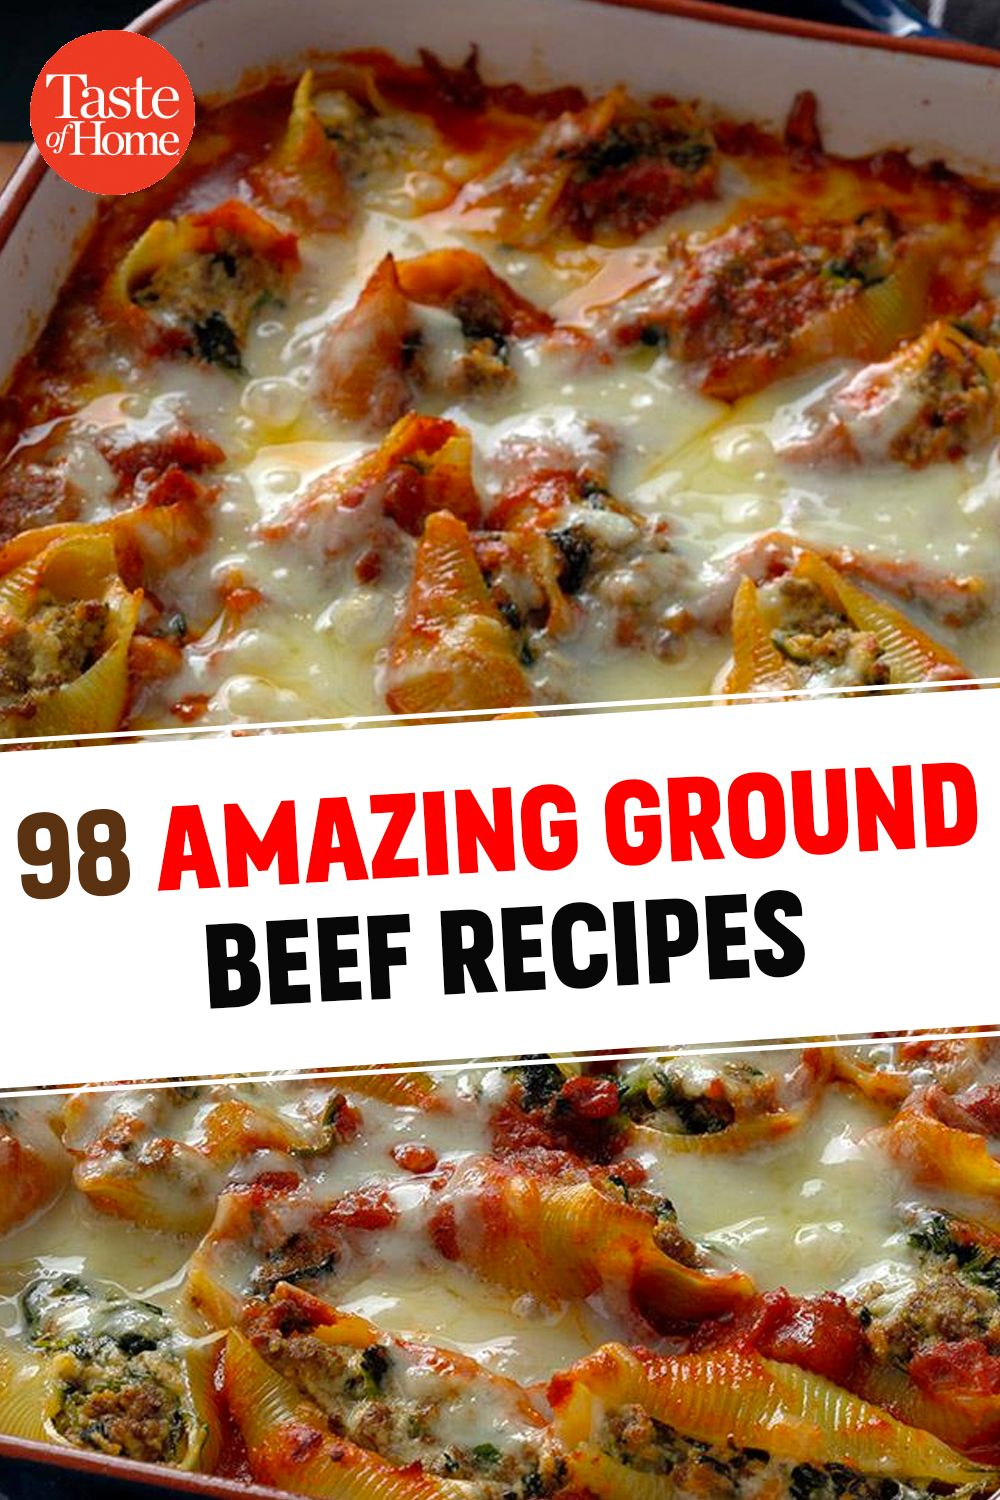 98 Amazing Ground Beef Recipes In 2020 Beef Recipes Sweet Hawaiian Crockpot Chicken Recipe Ground Beef Recipes